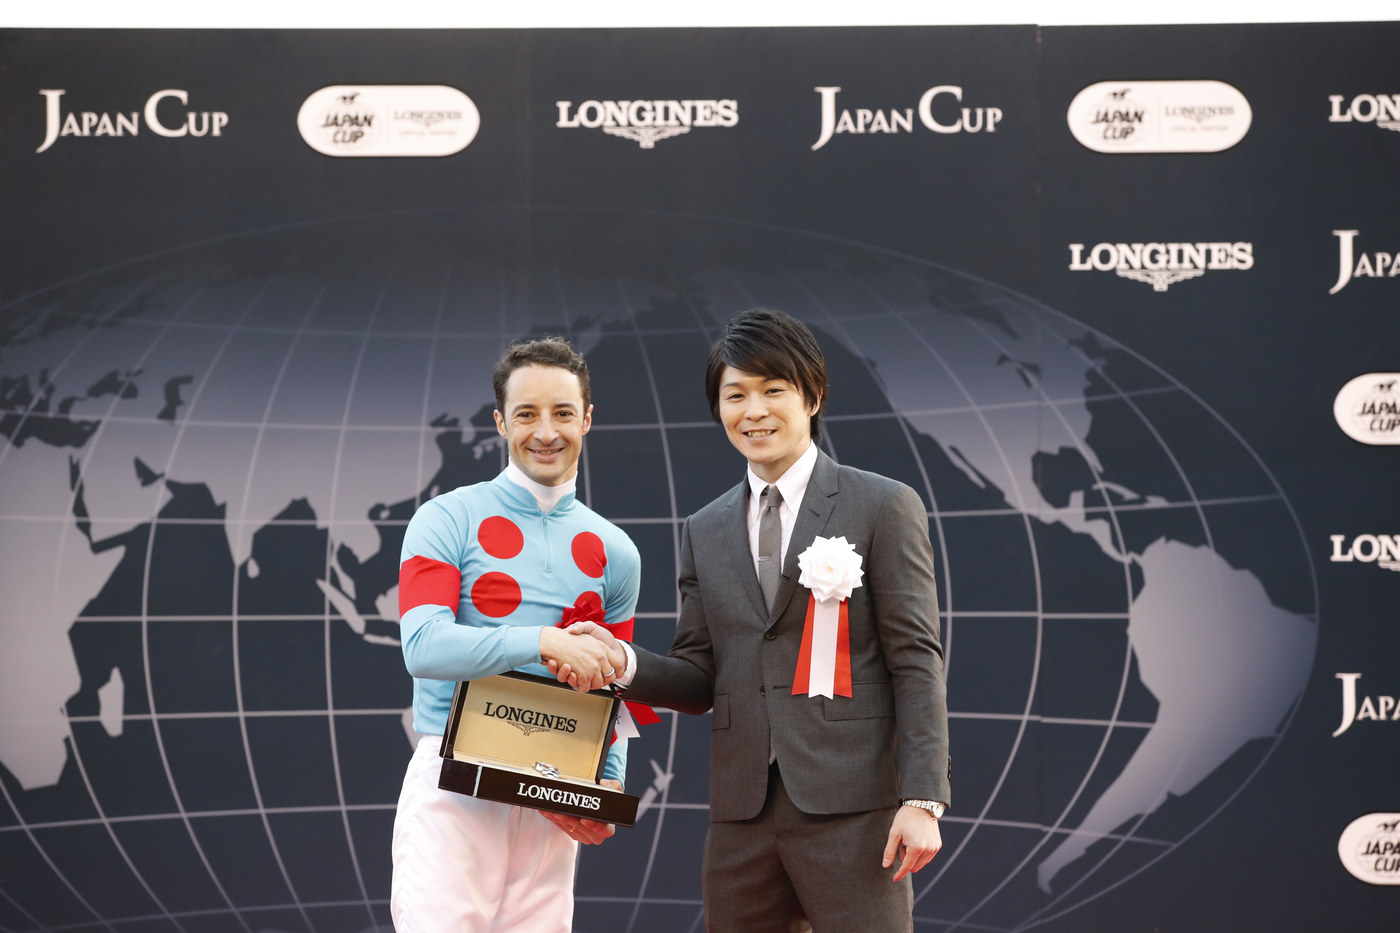 Longines Flat Racing Event: Christophe Lemaire riding Almond Eye galloped to victory in record time at the 38th edition of the Japan Cup in association with Longines  5